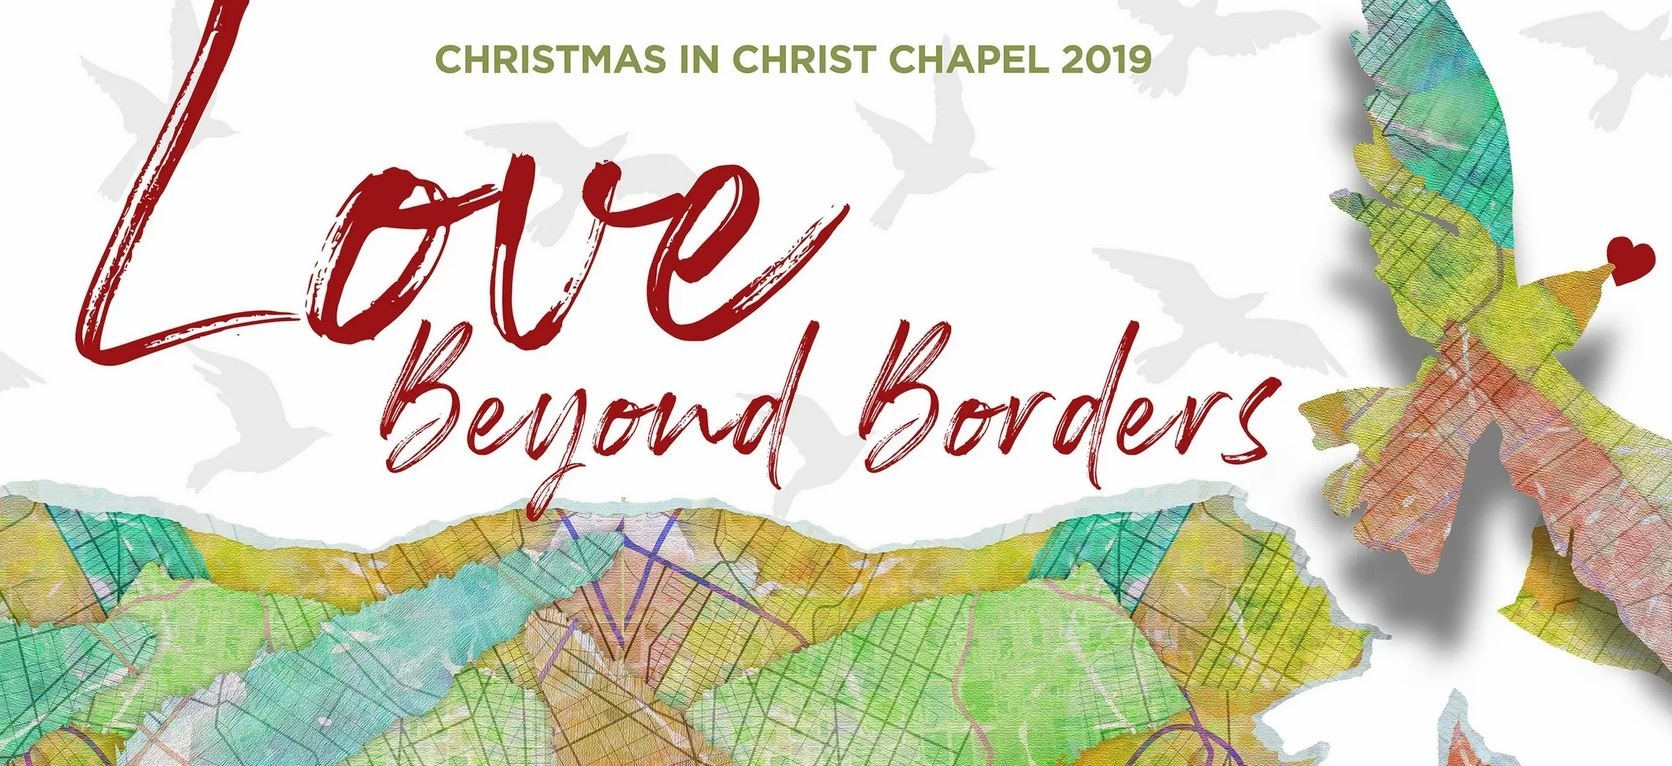 Annual Christmas In Christ Chapel Worship Services Set For